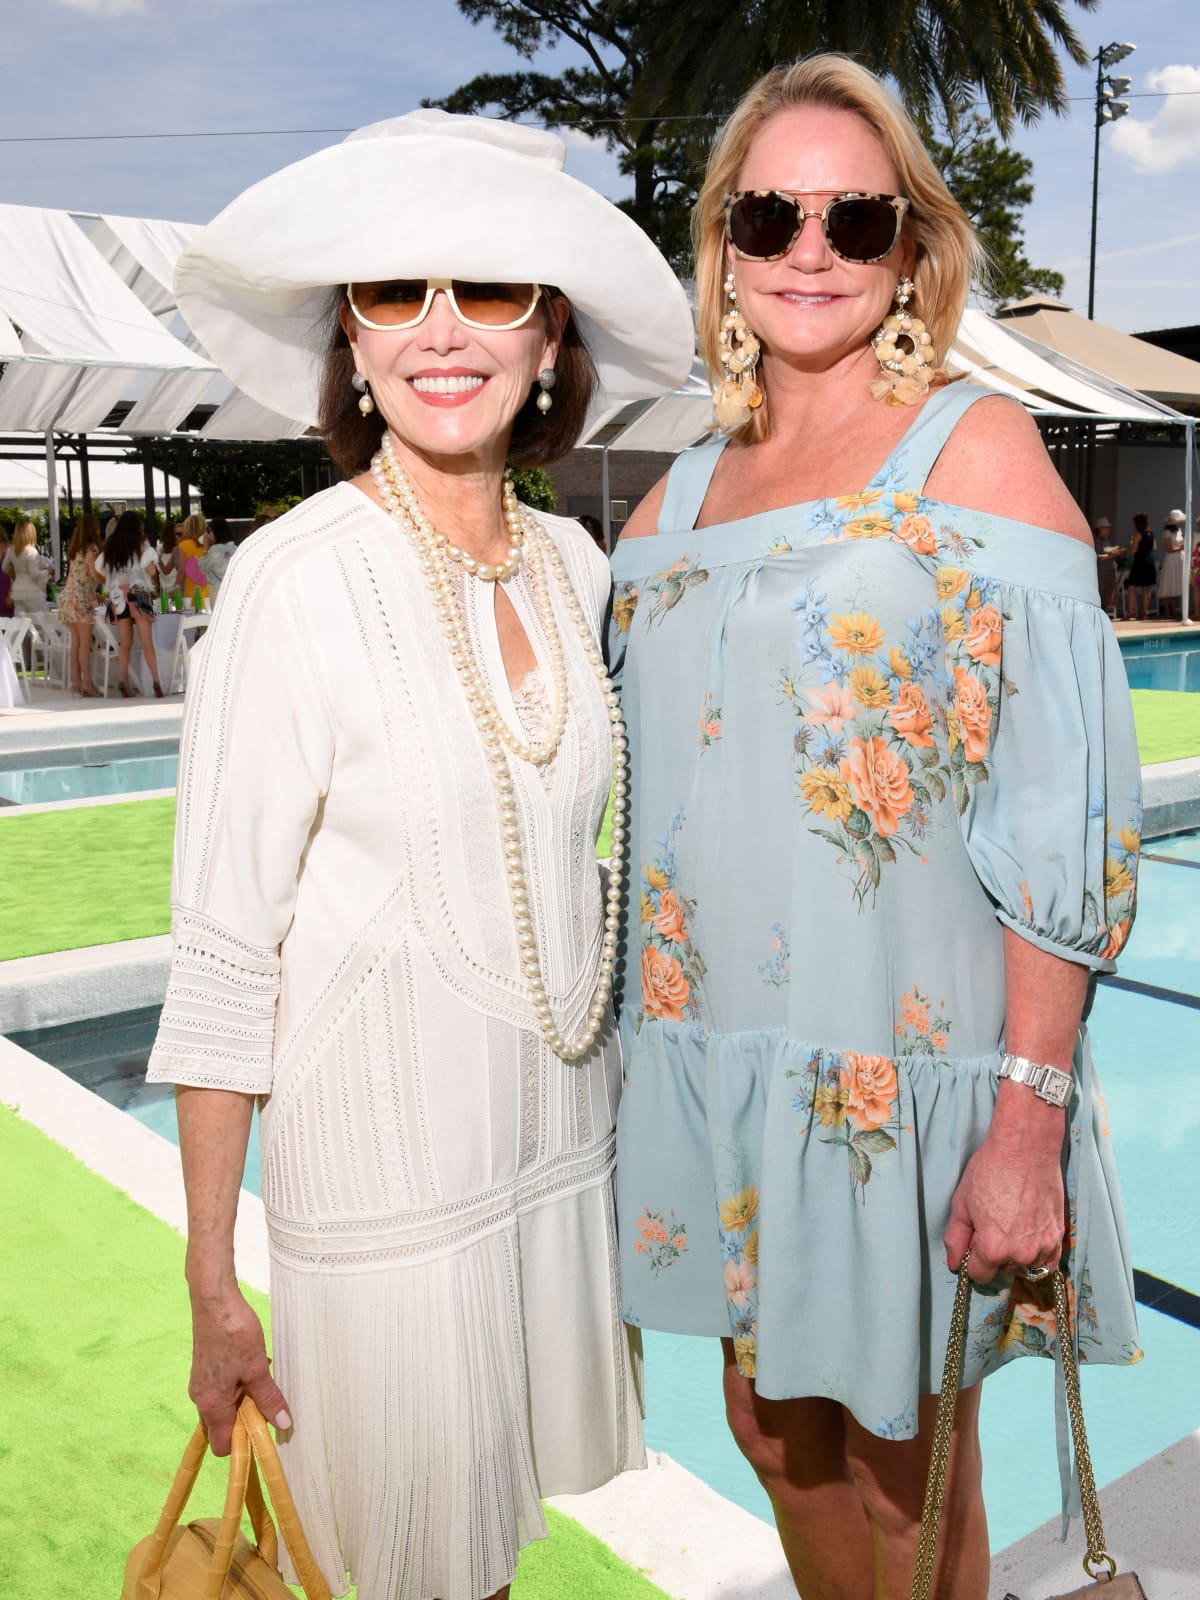 Houston, River Oaks and Tootsies tennis tournament luncheon, April 2017, Sharon Worley, Katie Cullen